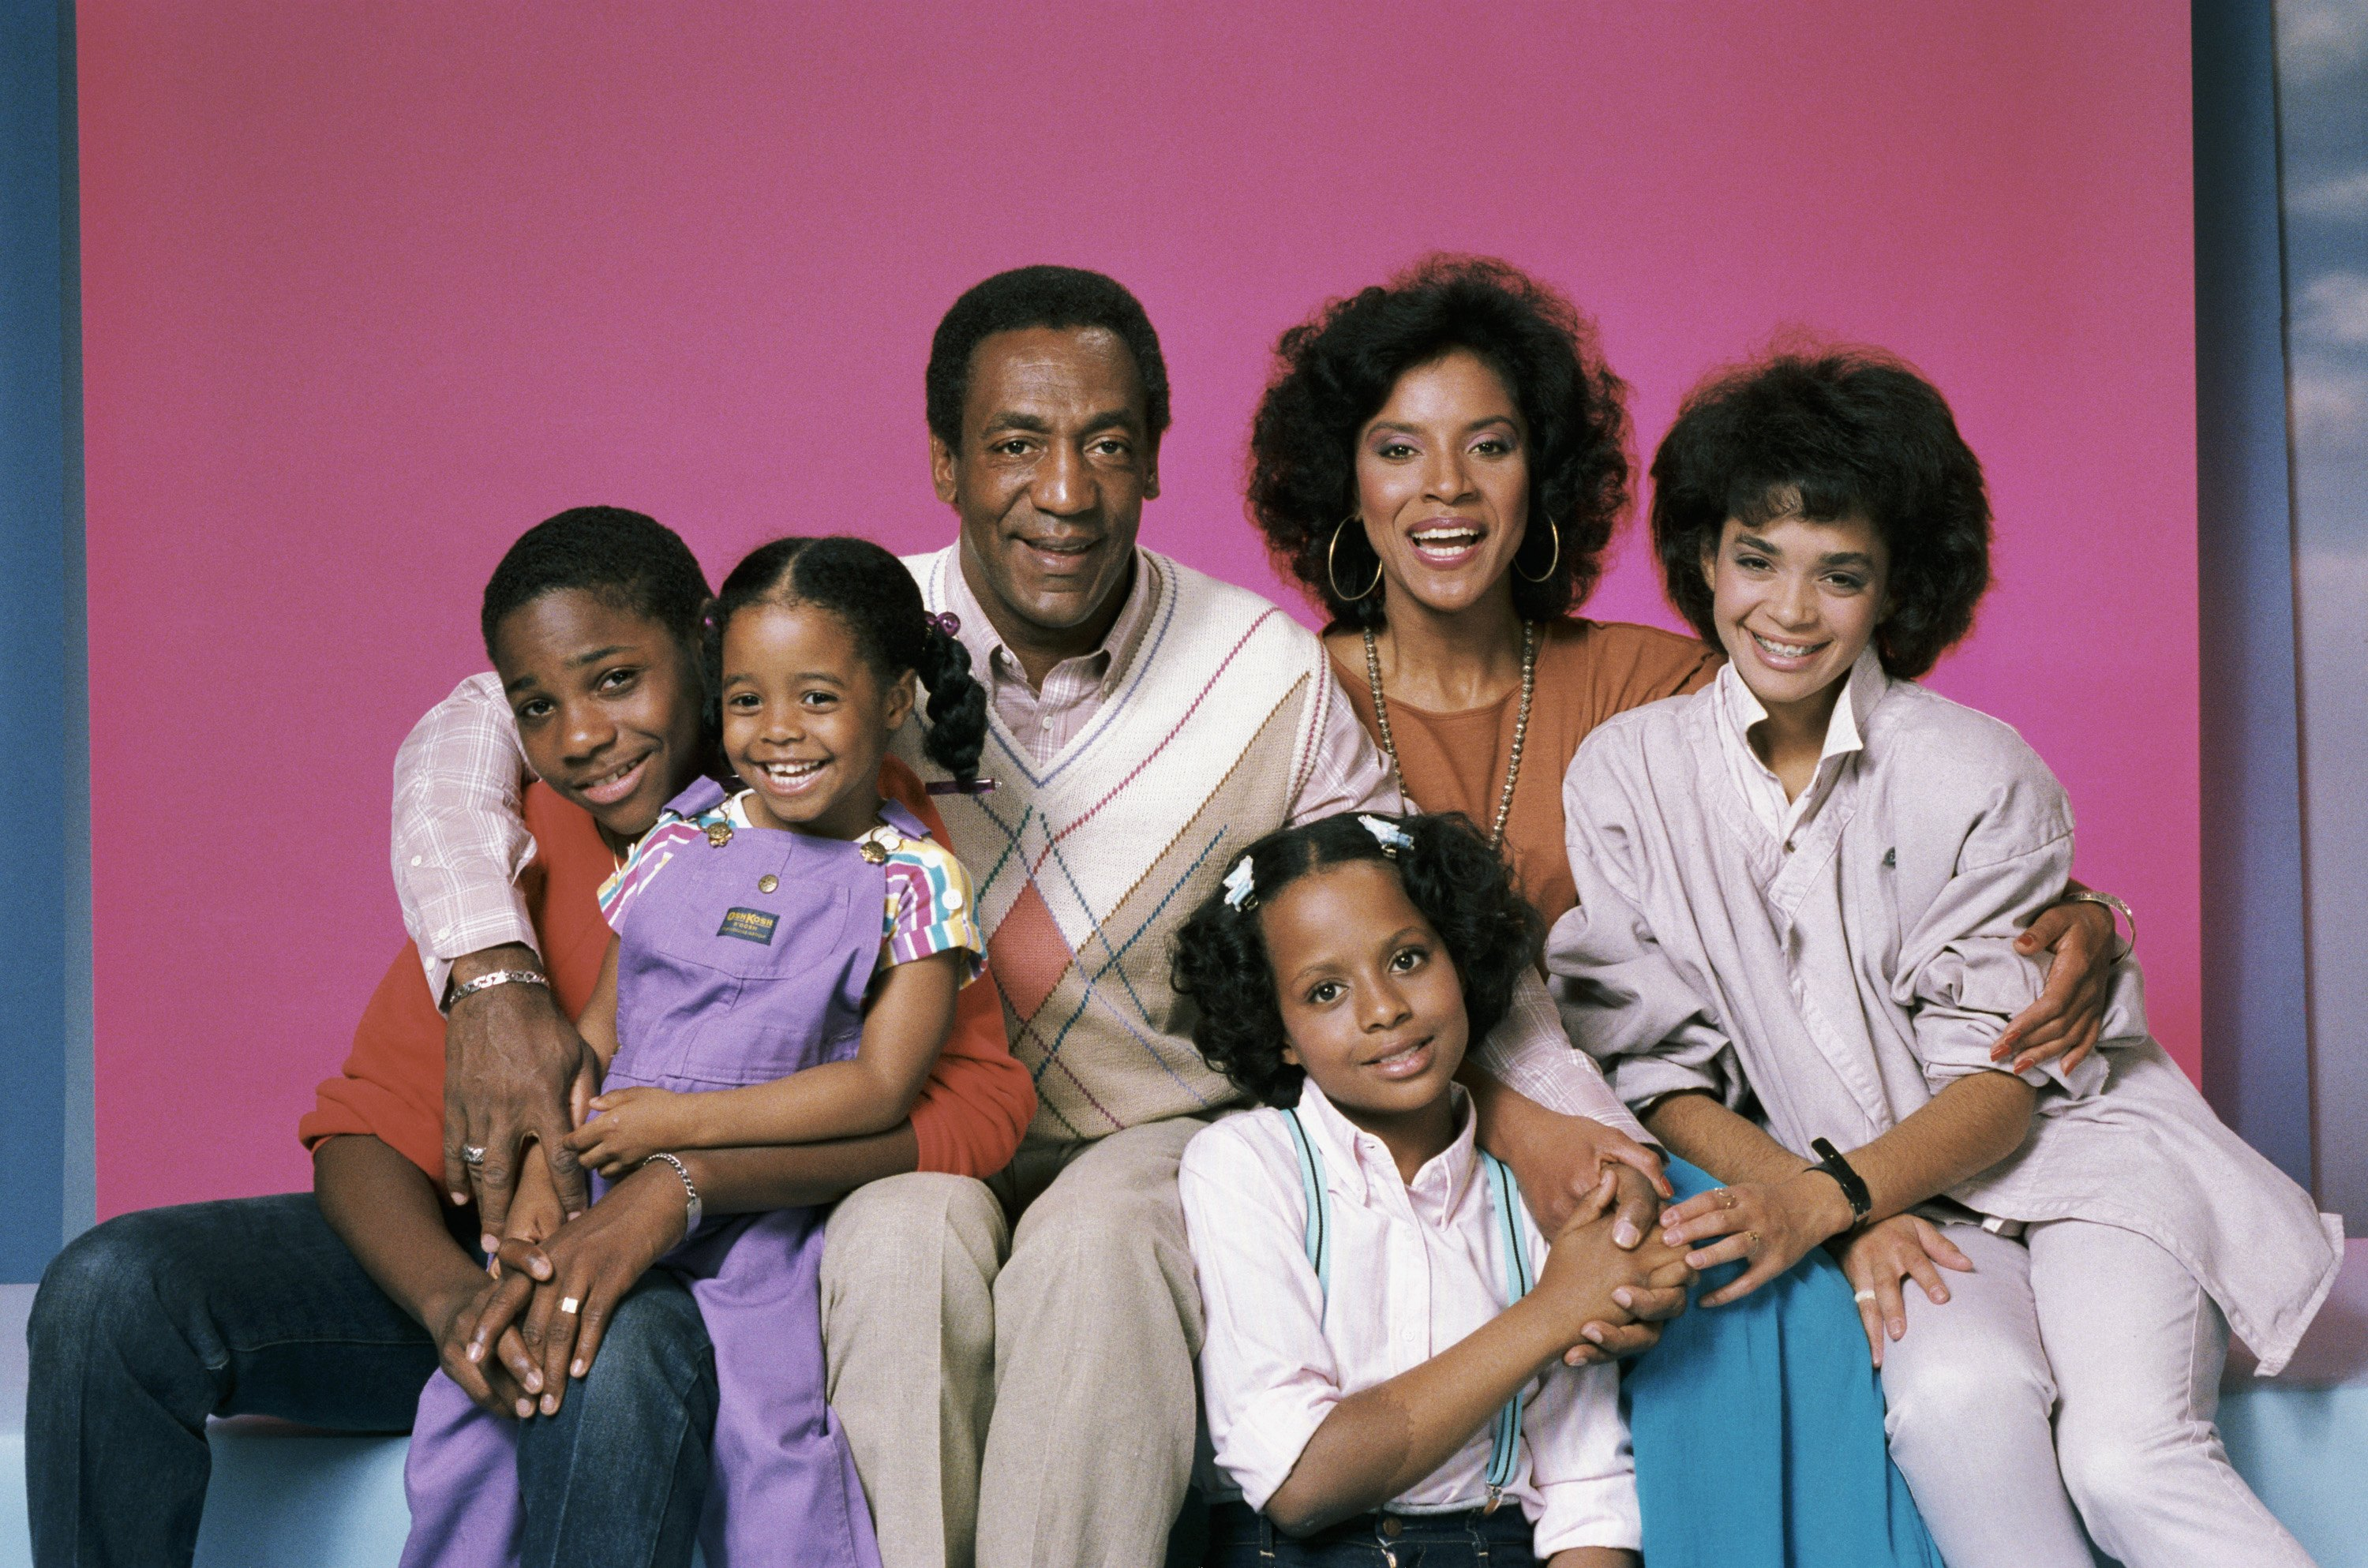 The Cosby Show cast Getty Images